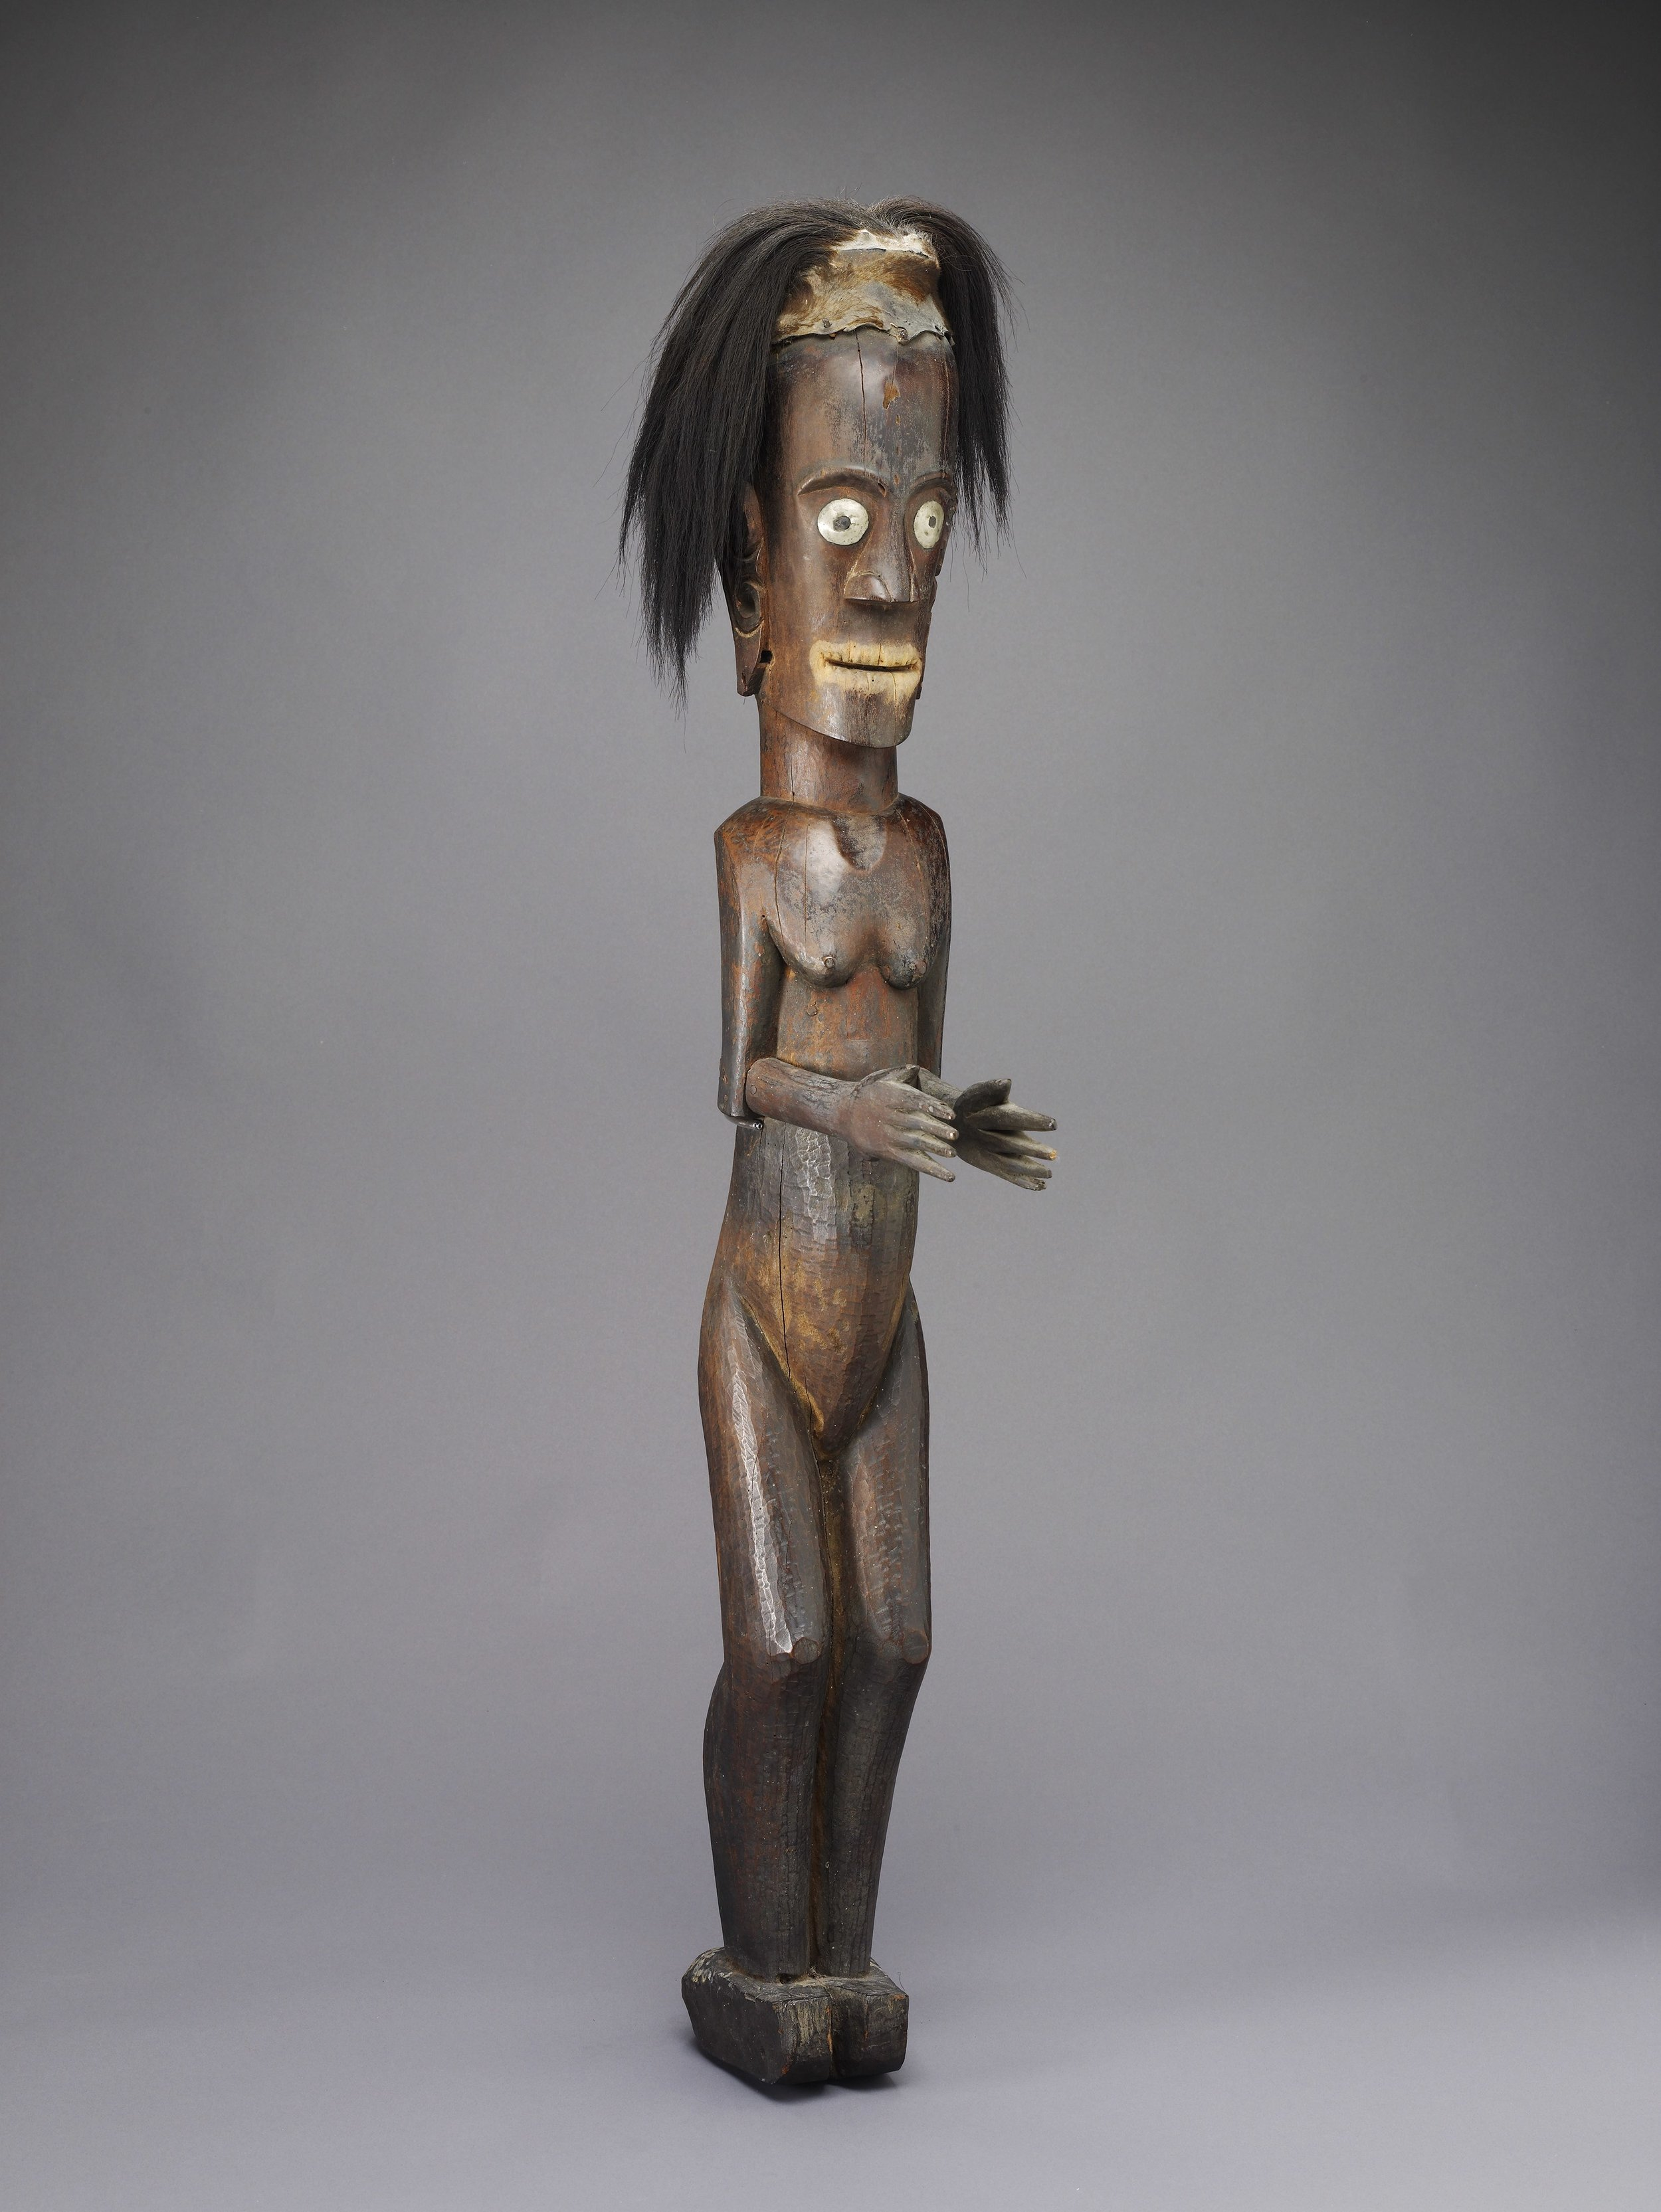 Batak Protective Statue |  Pagar  | North Sumatra © de Young | Fine Arts Museums of San Francisco